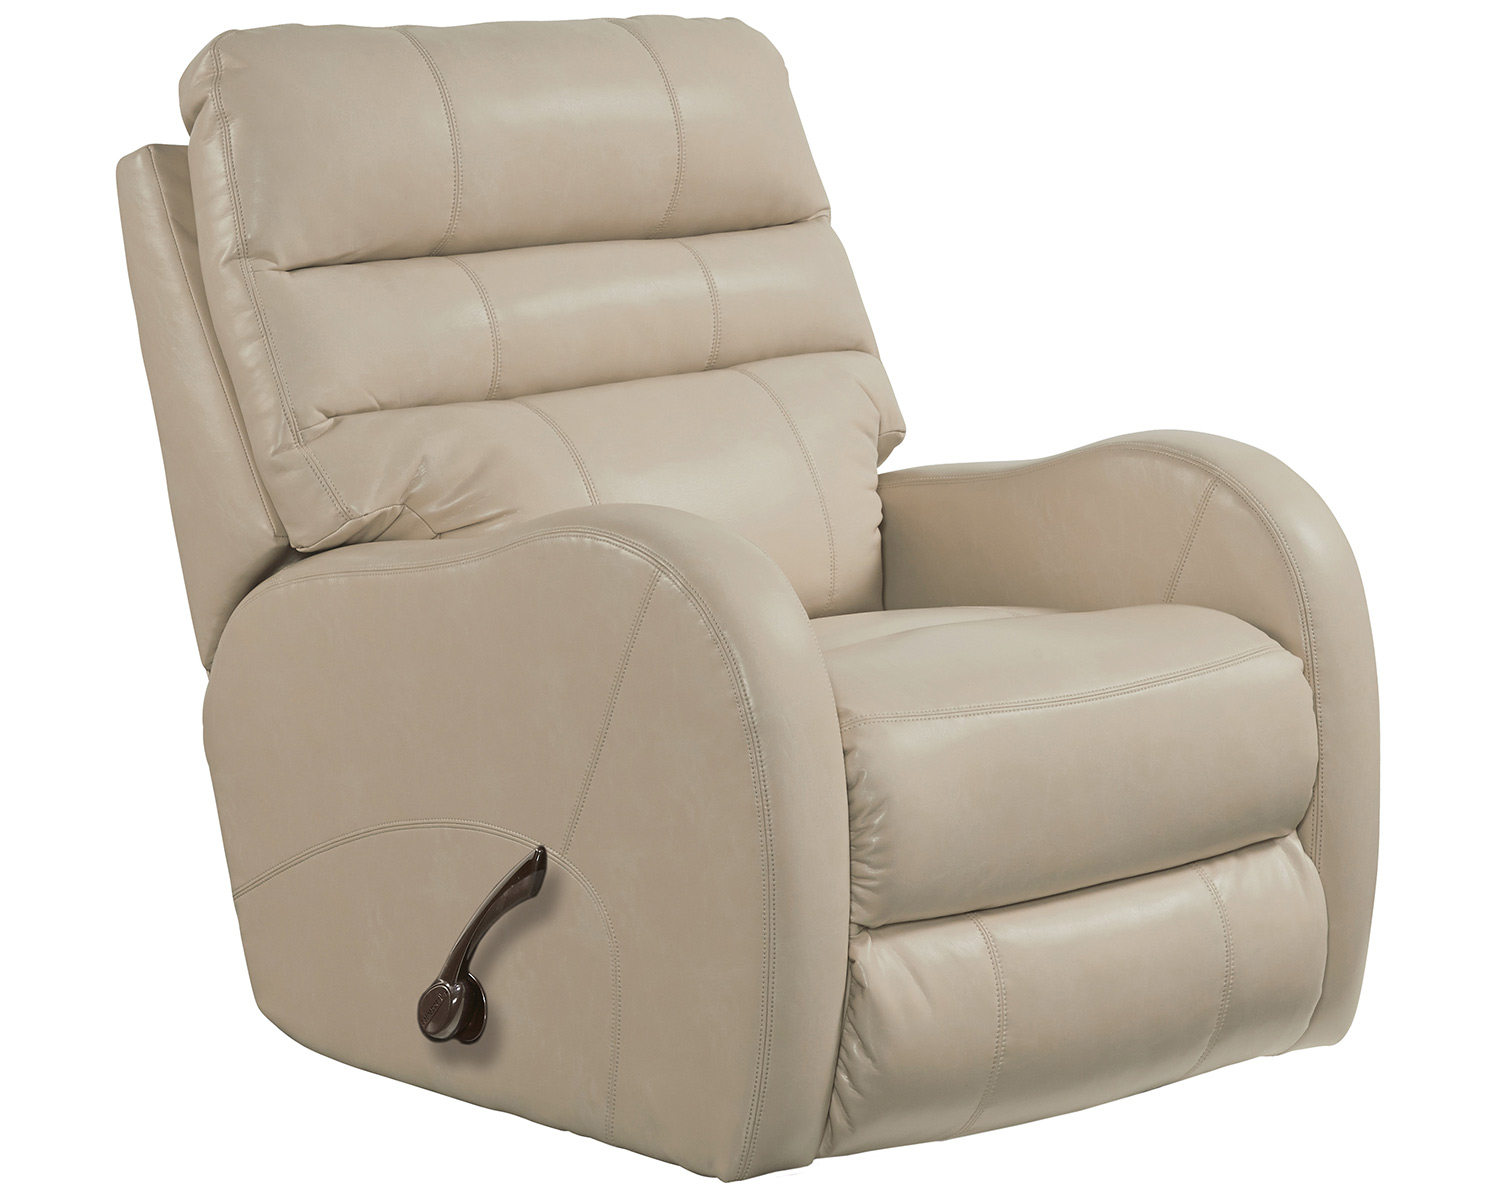 CatNapper Searcy Rocker Recliner Chair - Parchment